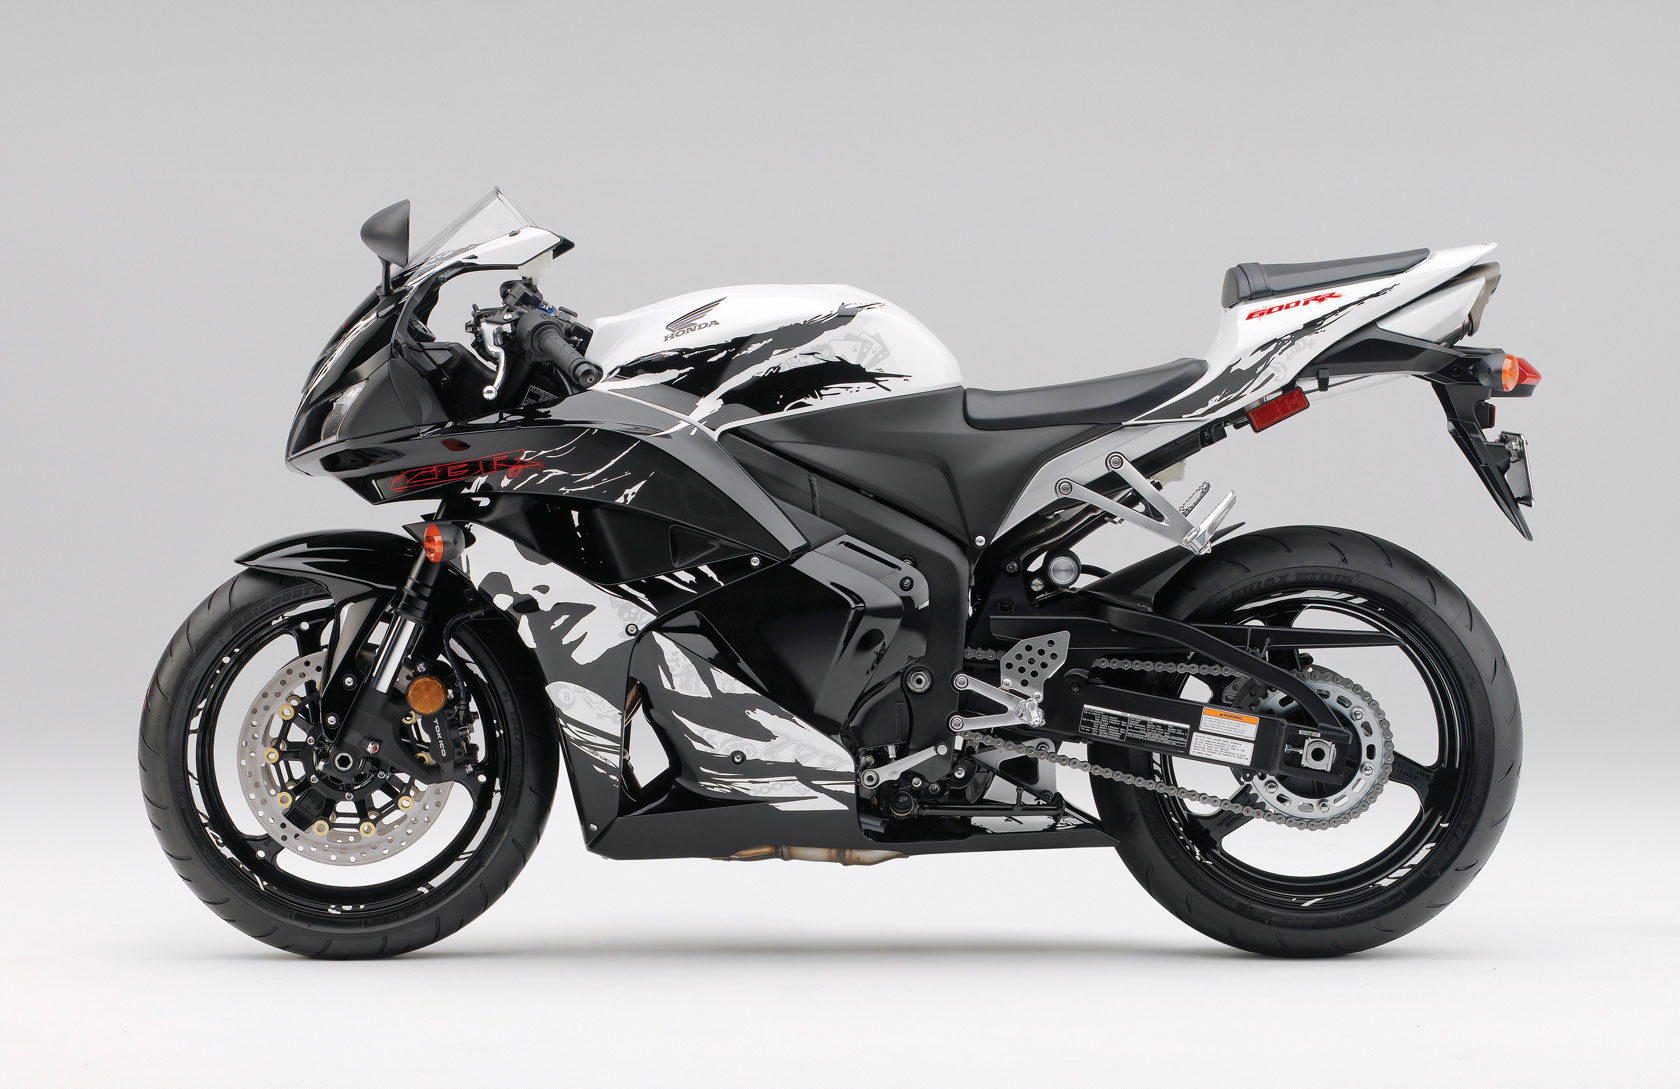 Honda Cbr 600 Rr Pics Specs And List Of Seriess By Year Onlymotorbikes Com